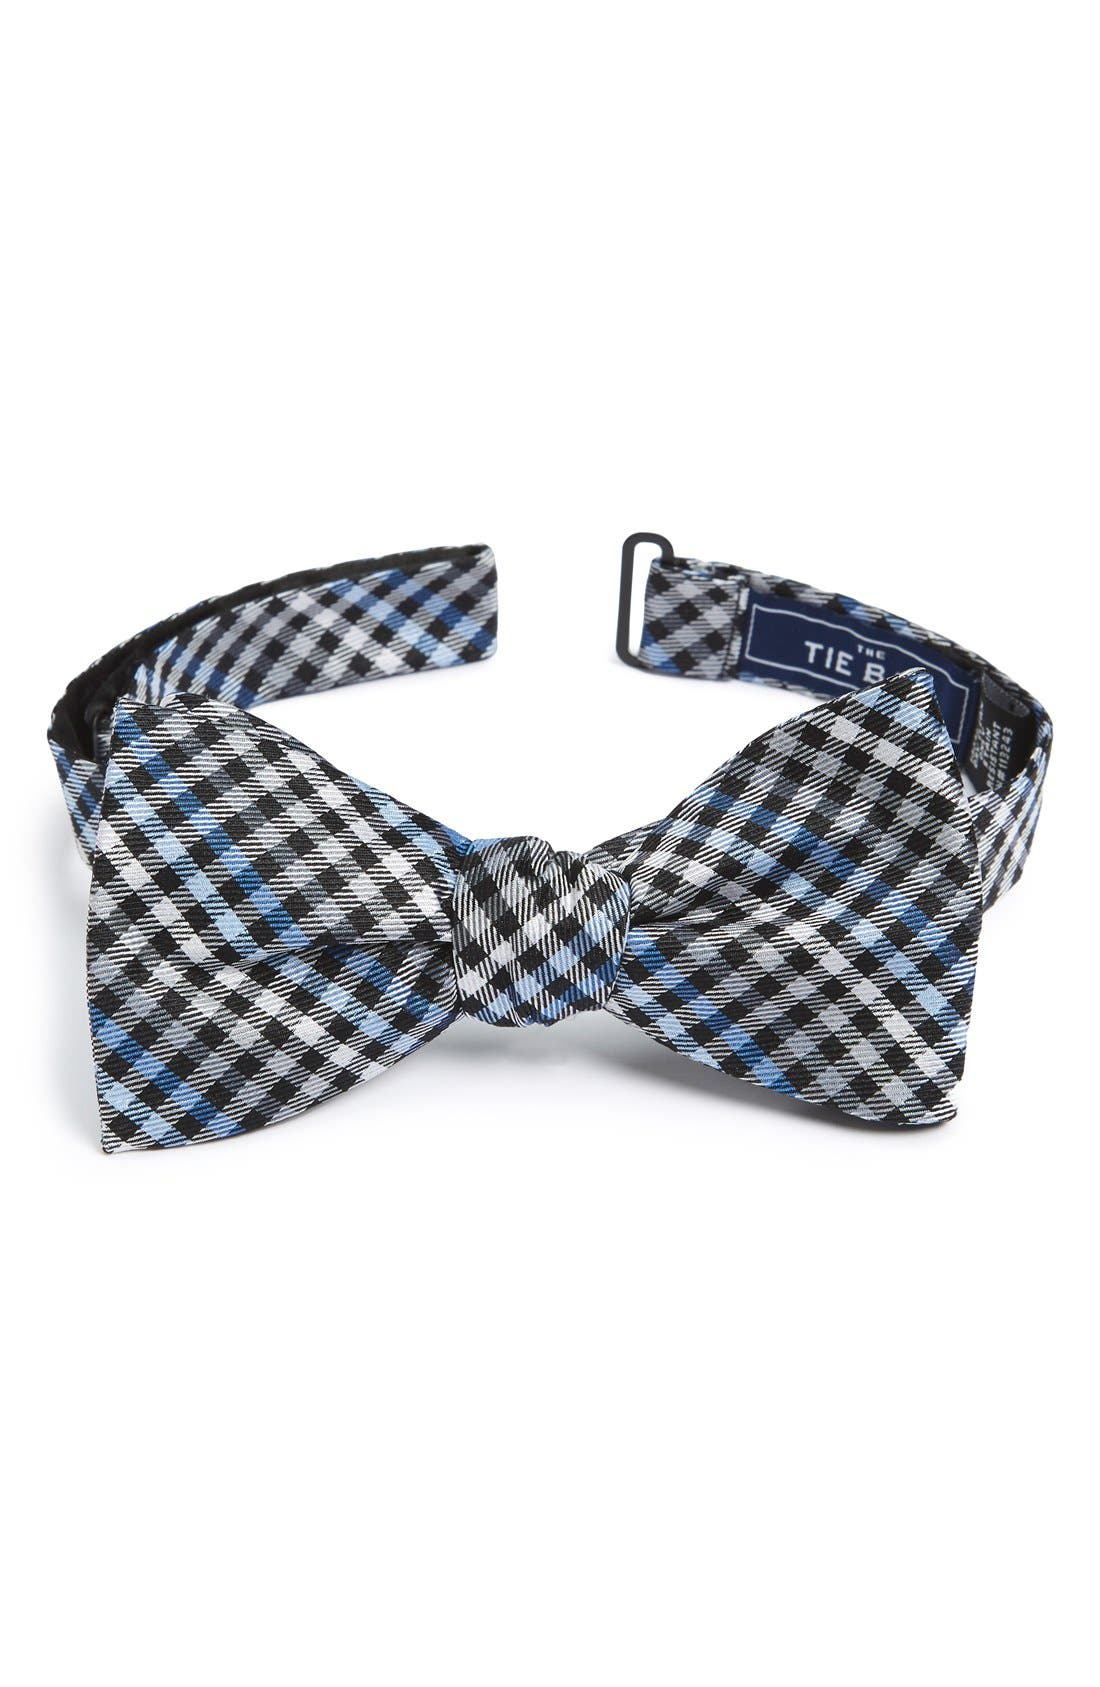 Alternate Image 1 Selected - The Tie Bar Plaid Bow Tie